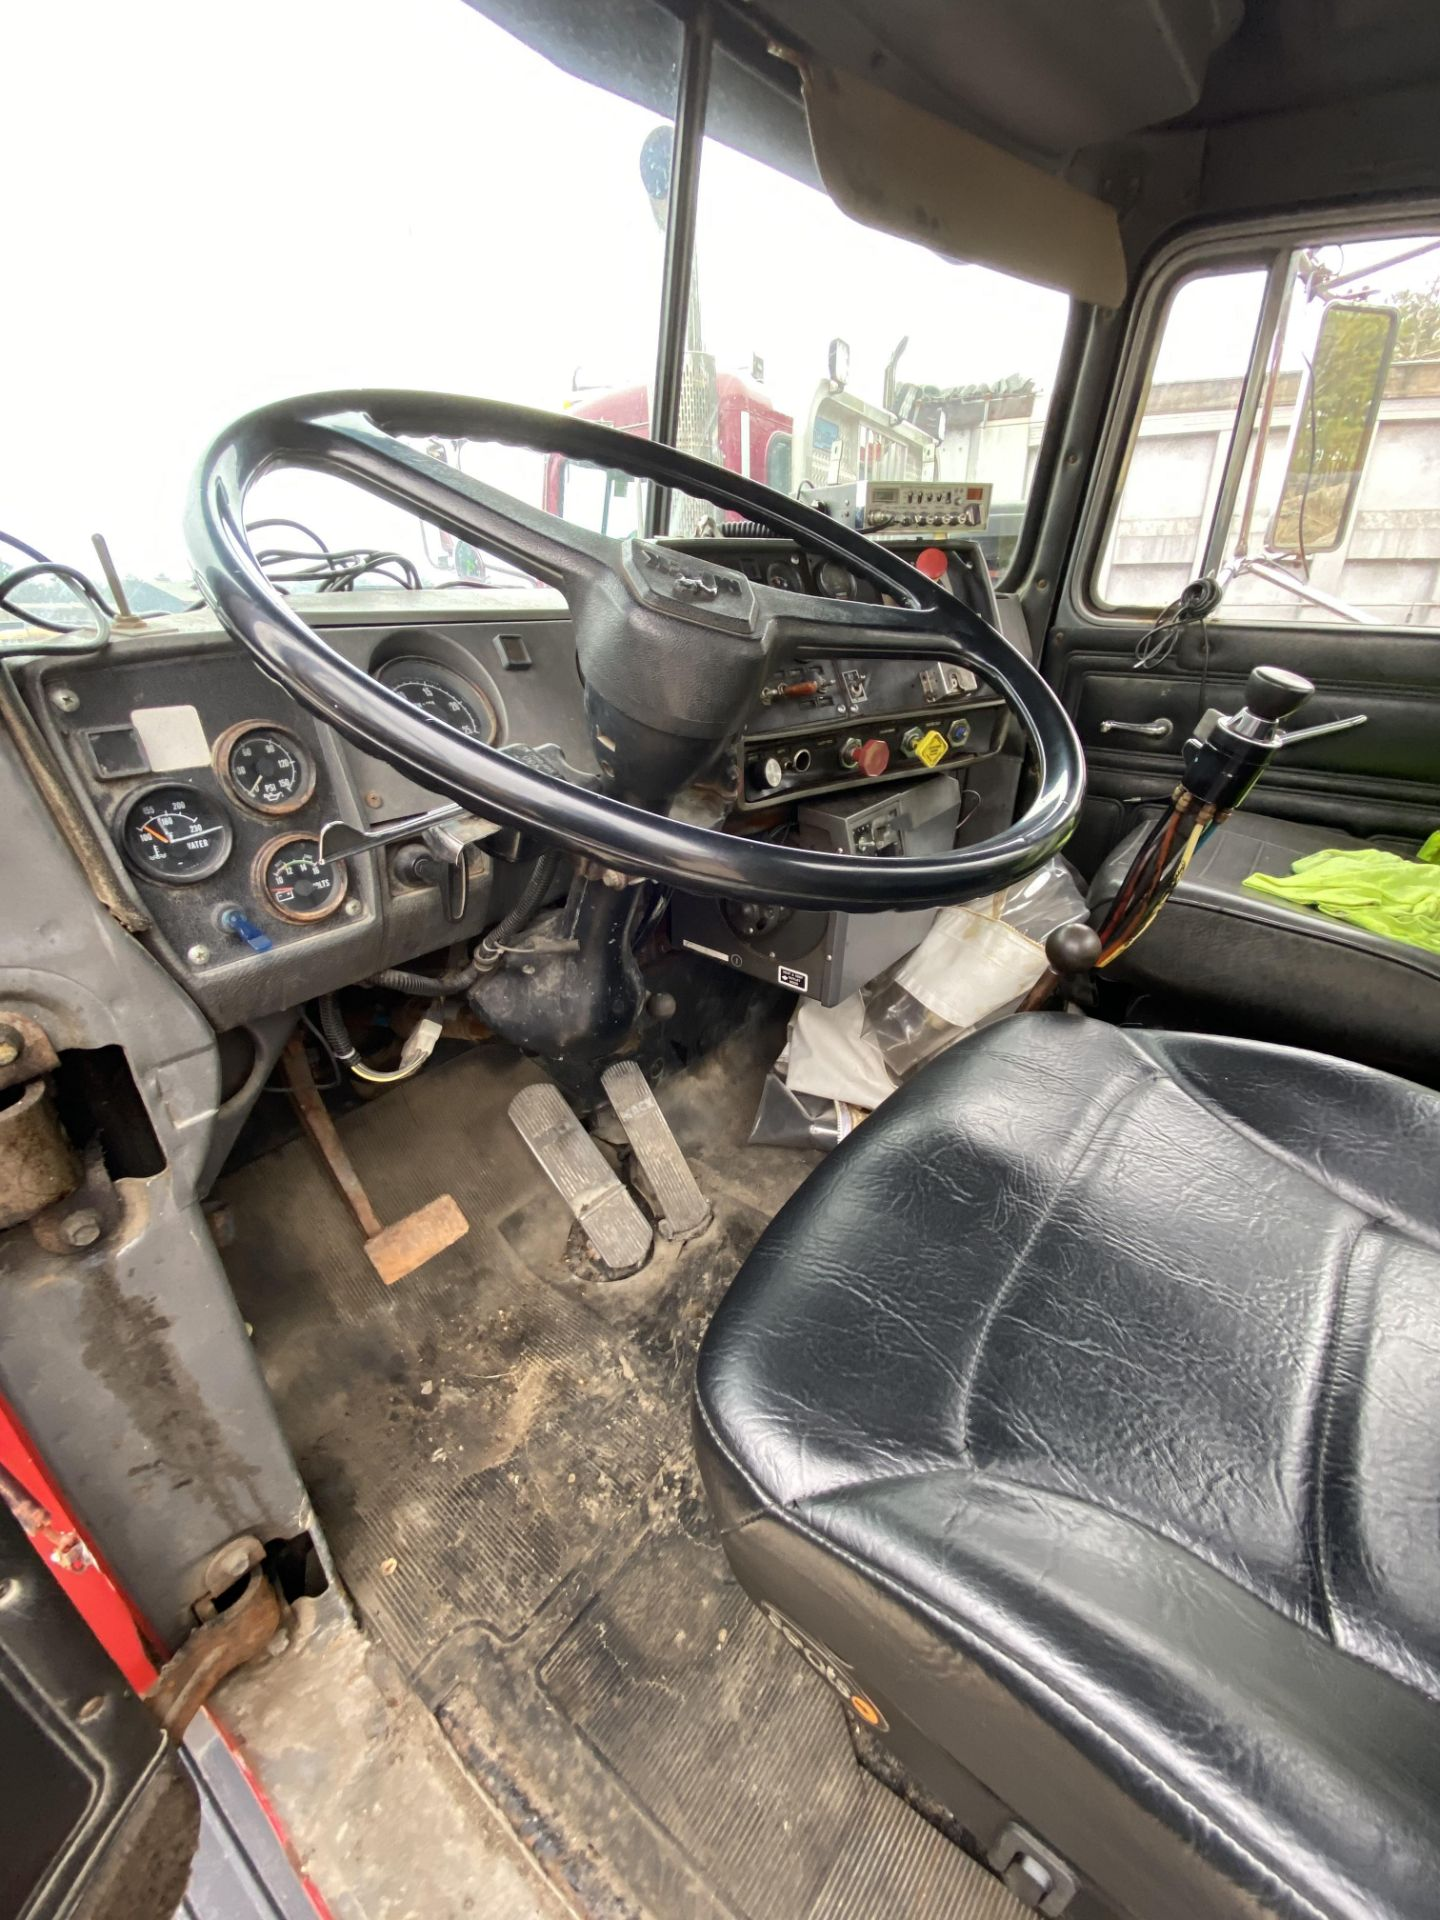 1986 Mack RD688SX Tandem Axle Tractor VIN 1M2P143Y8GA004351, Meter Reads 301,625 Miles, Day Cab, - Image 18 of 22